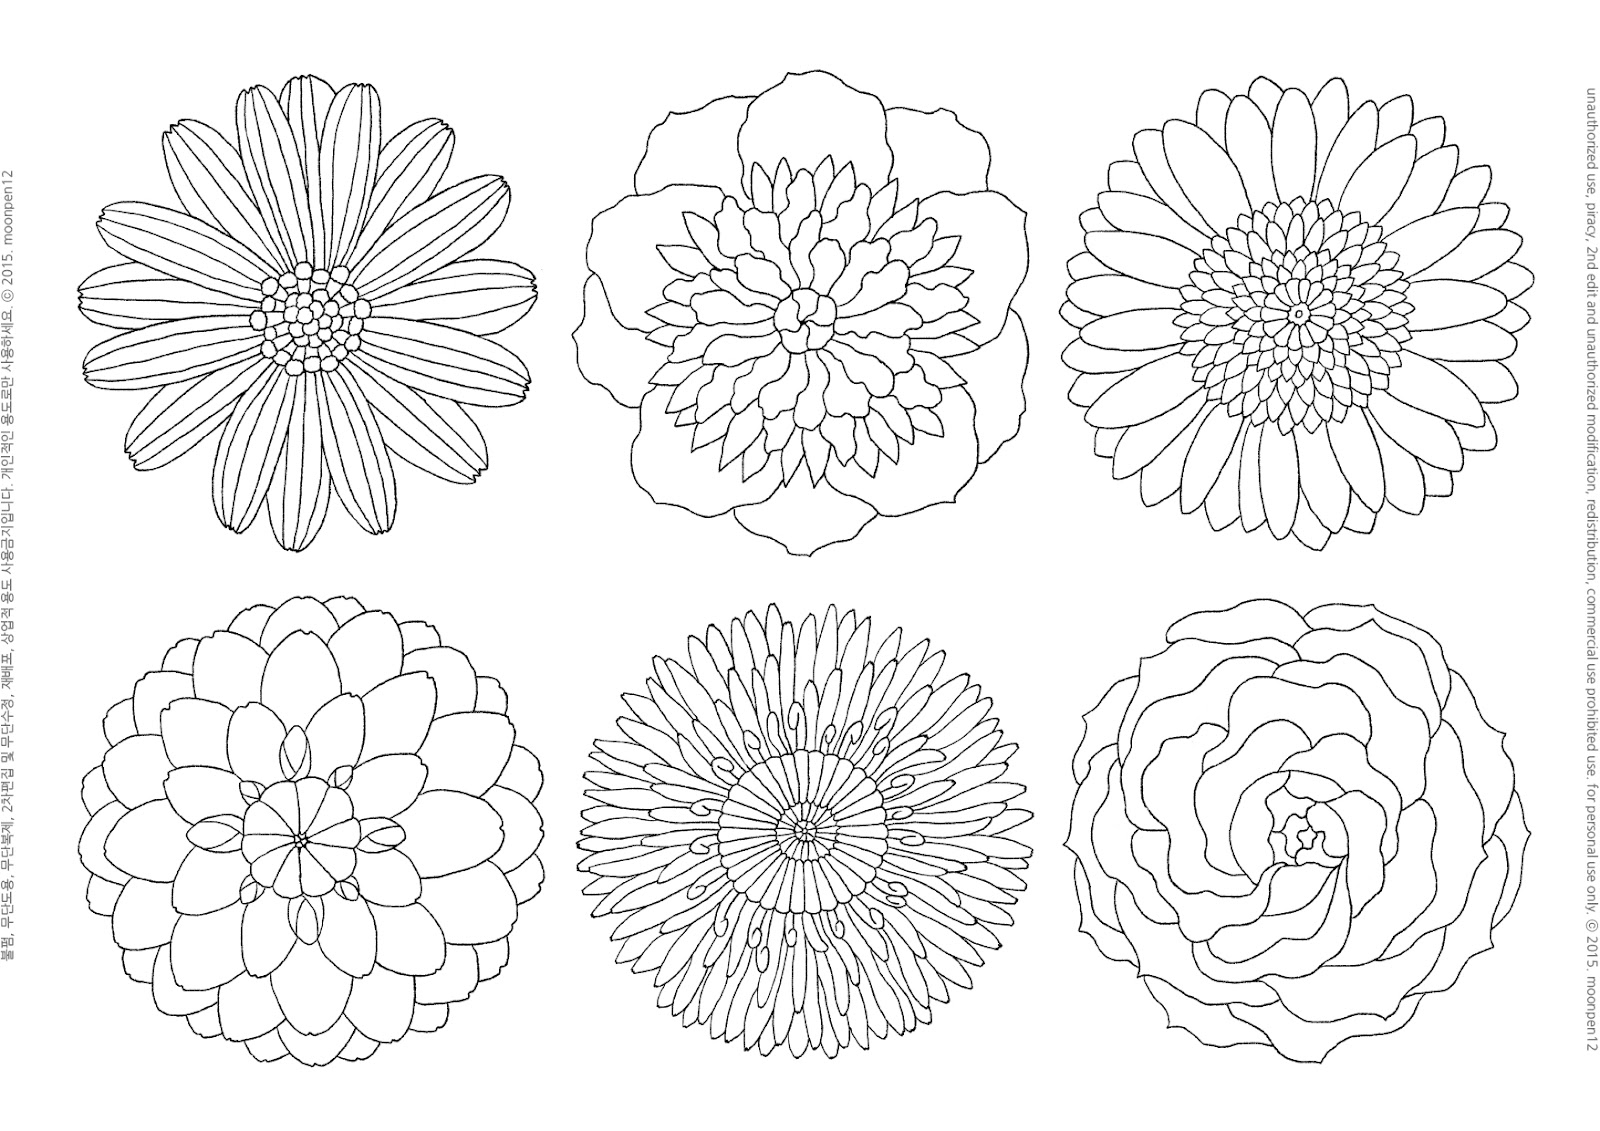 Adult Coloring Pages Pinterest #7